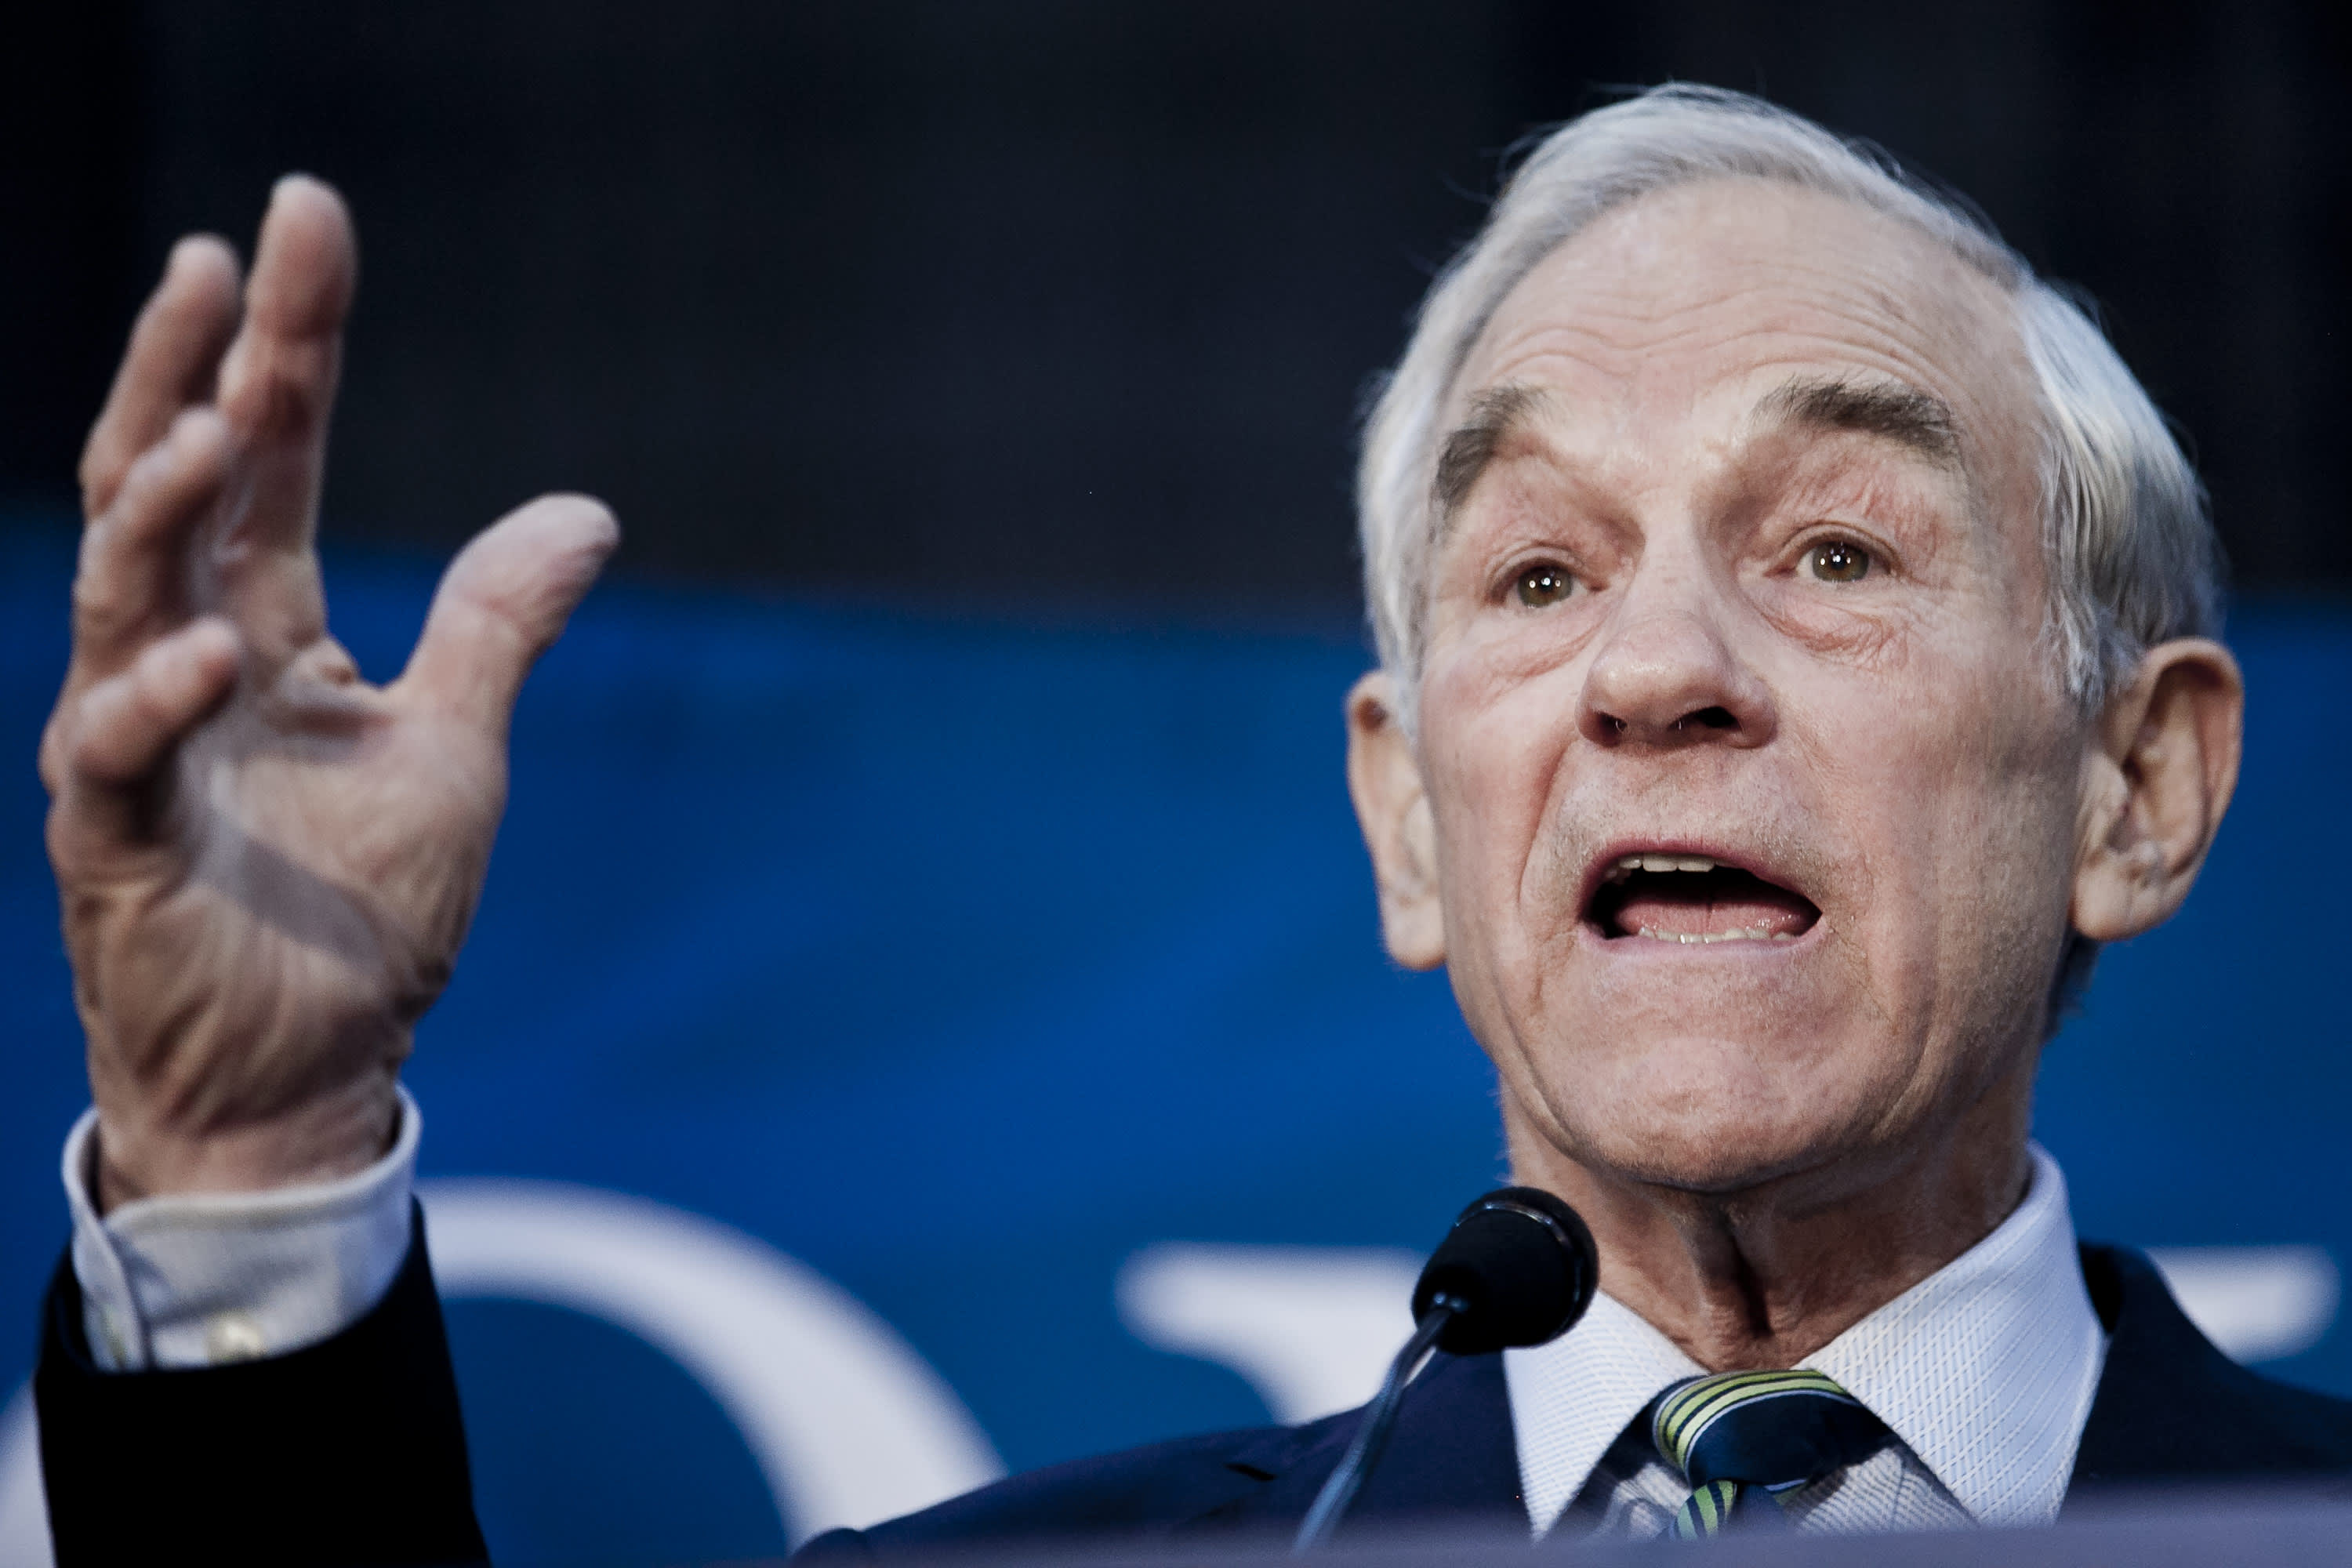 Ron Paul: Fed cuts and China tariffs give socialists credibility for 'first time in my lifetime'